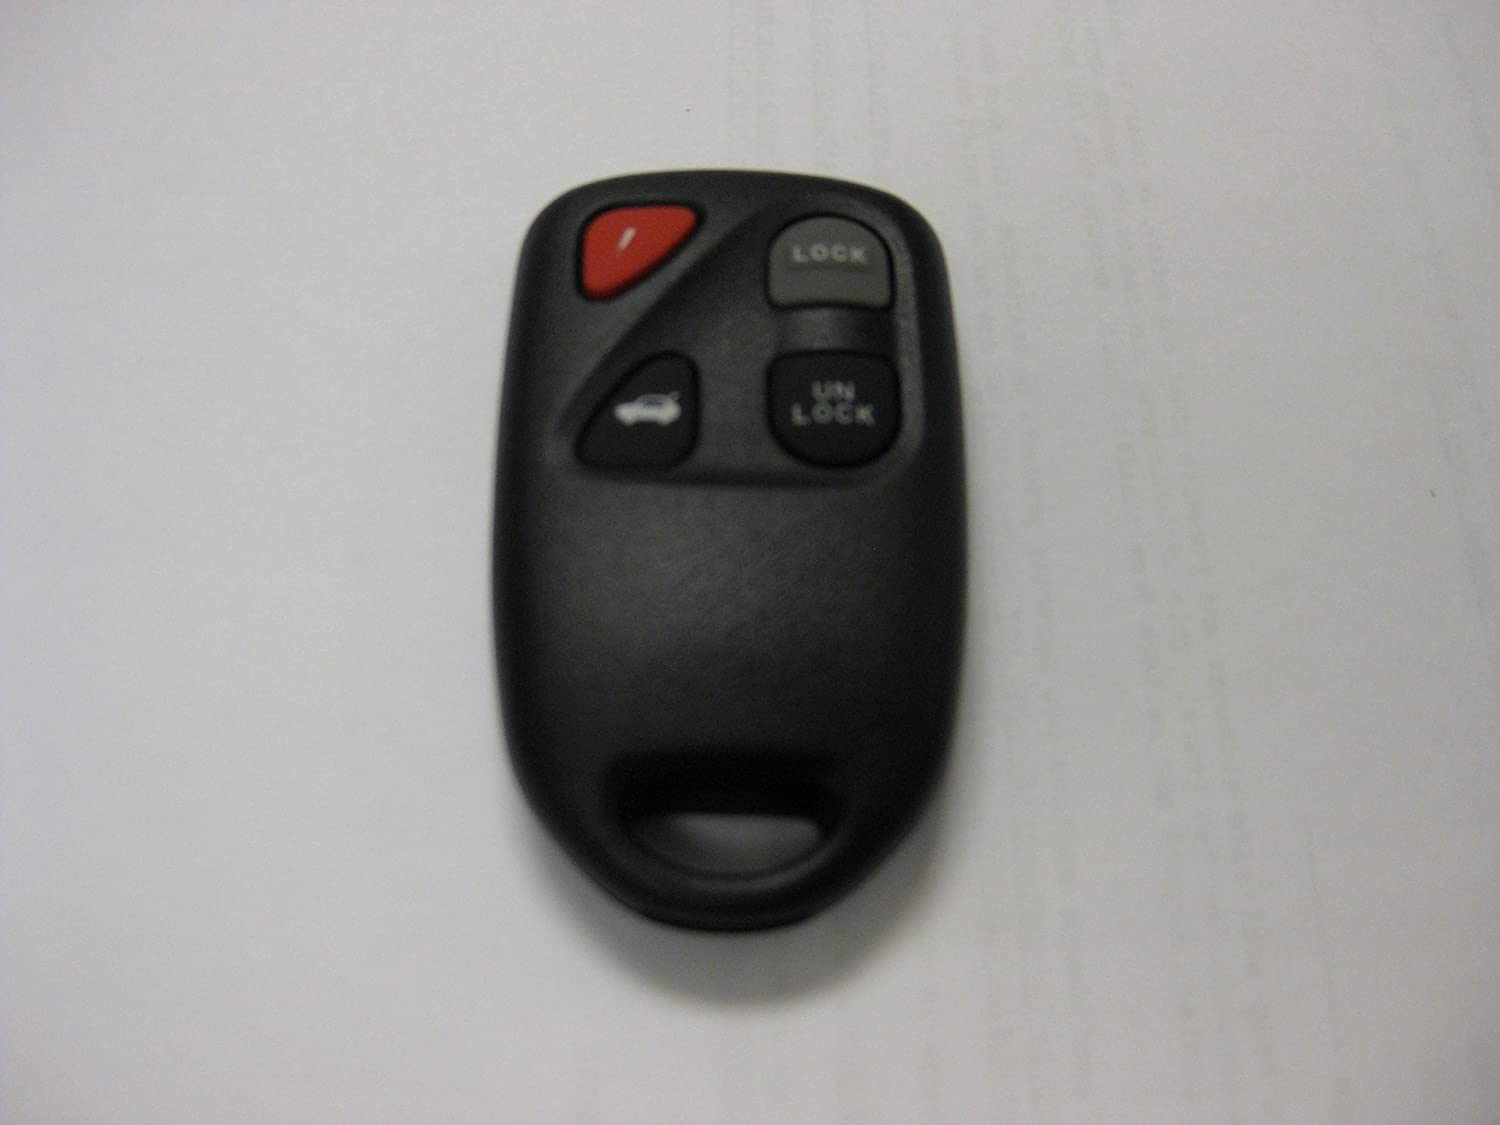 Mazda FEY1-67-5RY Remote Control Transmitter for Keyless Entry and Alarm System